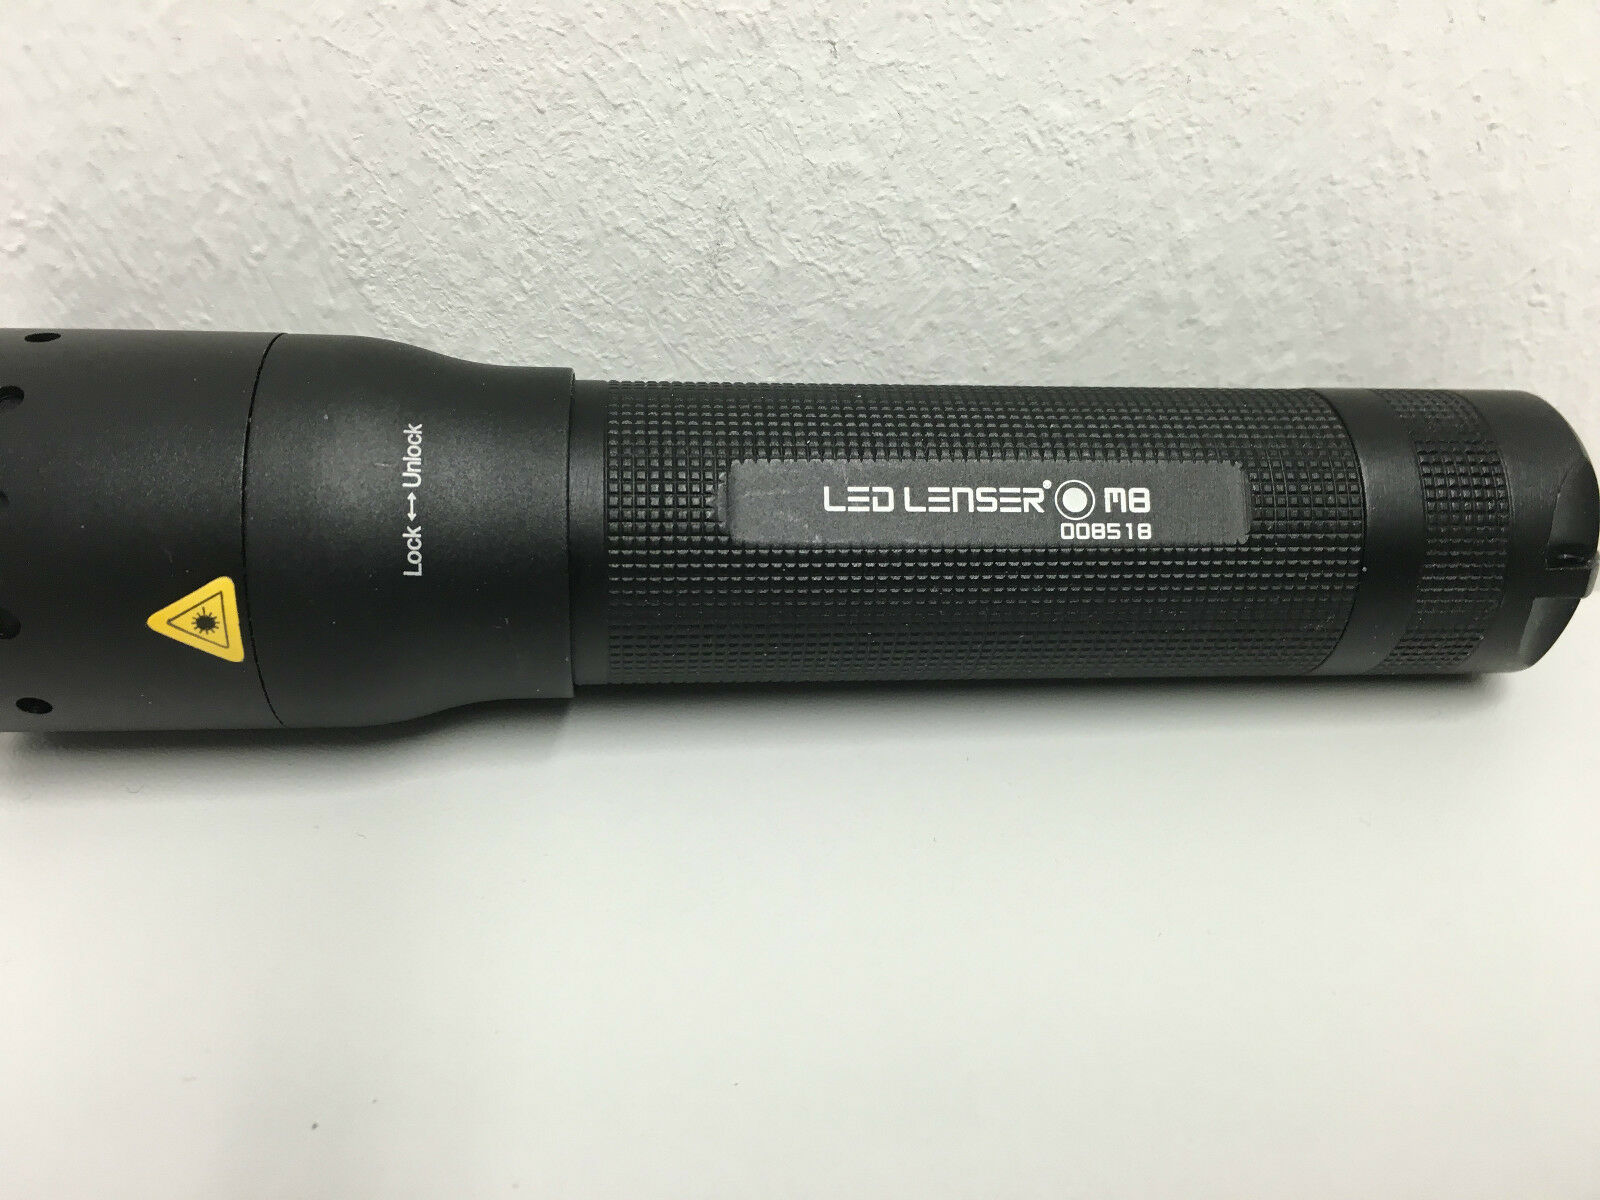 LED Lenser M  8 - Incl Batteries  best quality best price